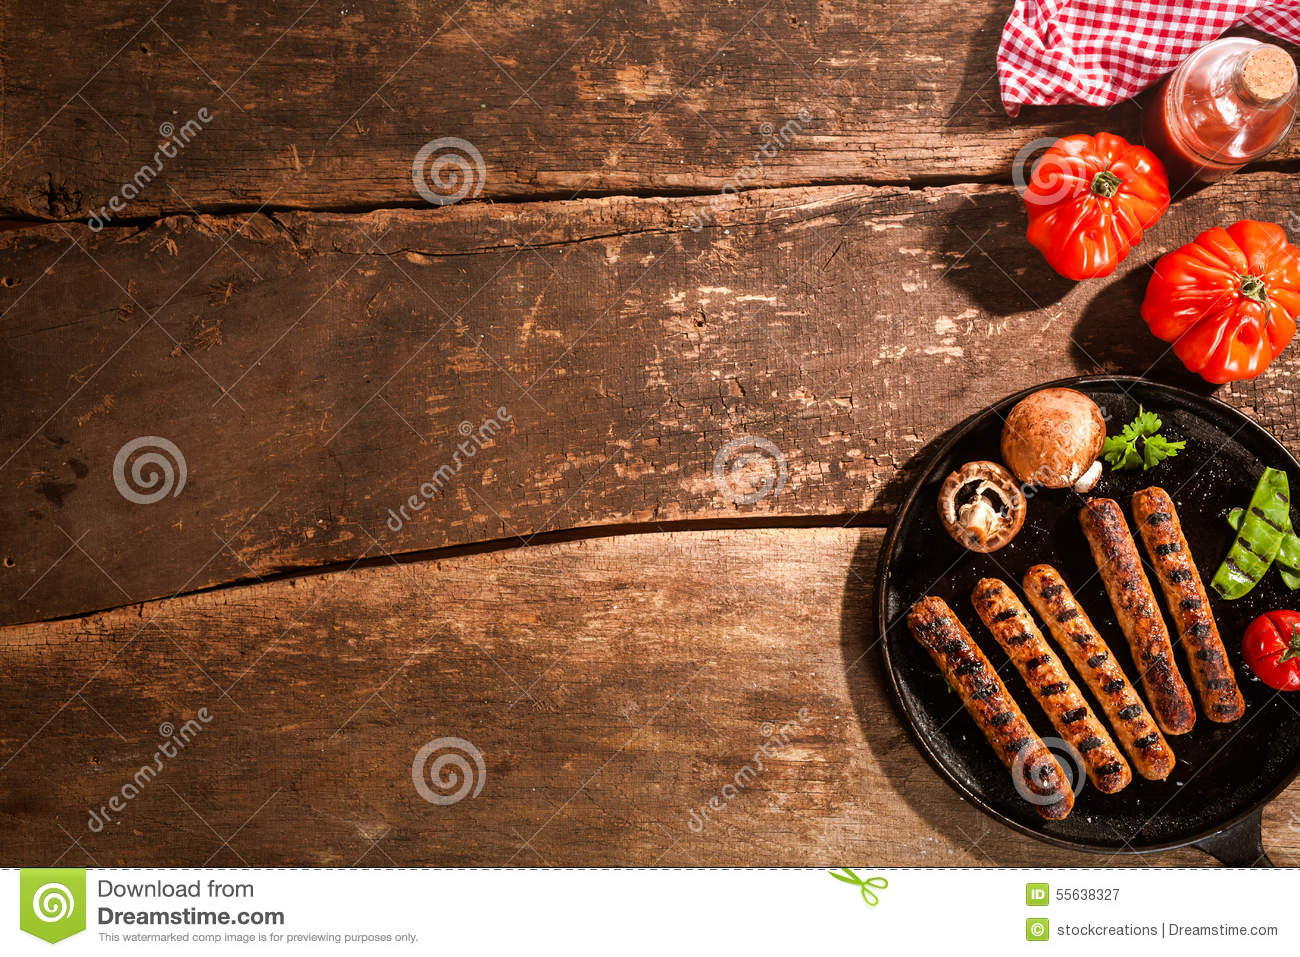 Grilled barbecued sausage with mushrooms